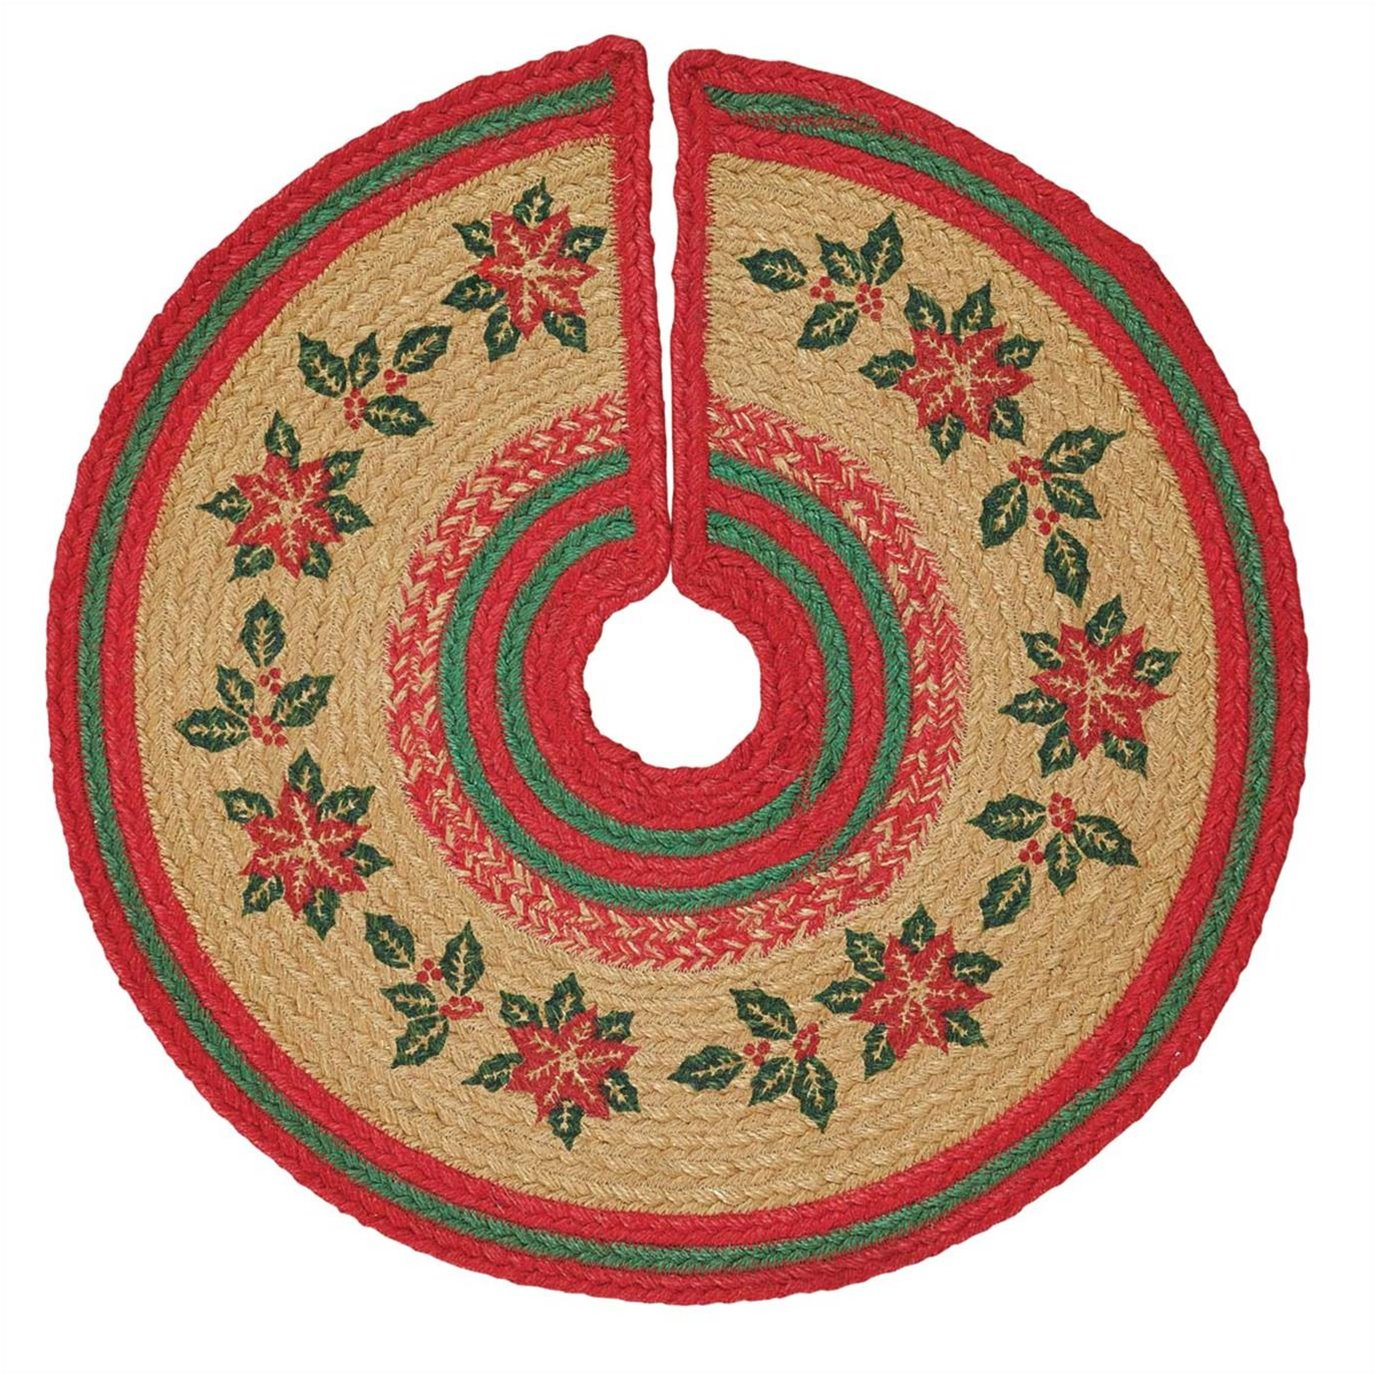 Poinsettia Jute Mini Tree Skirt 21